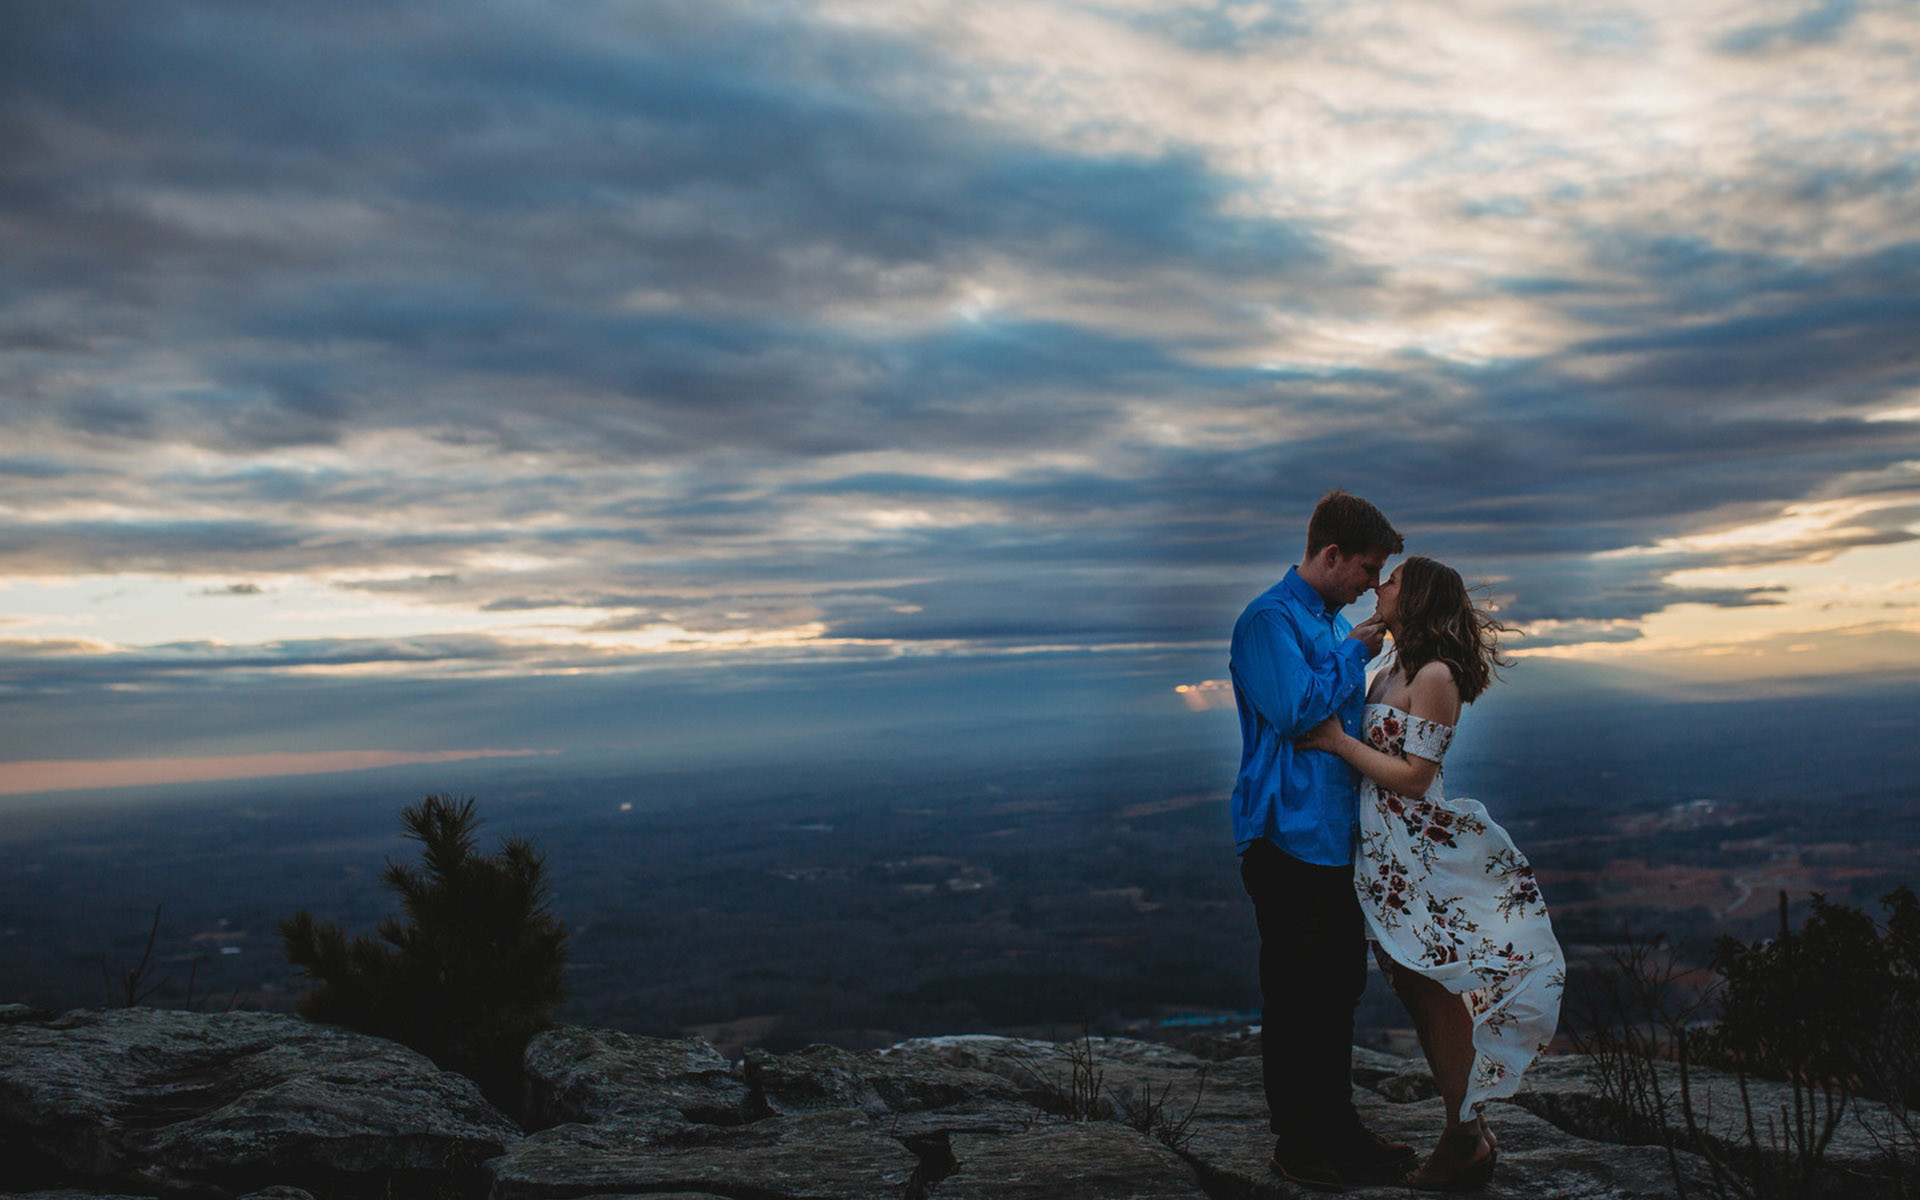 From a Magical Proposal to a Magical Engagement Shoot